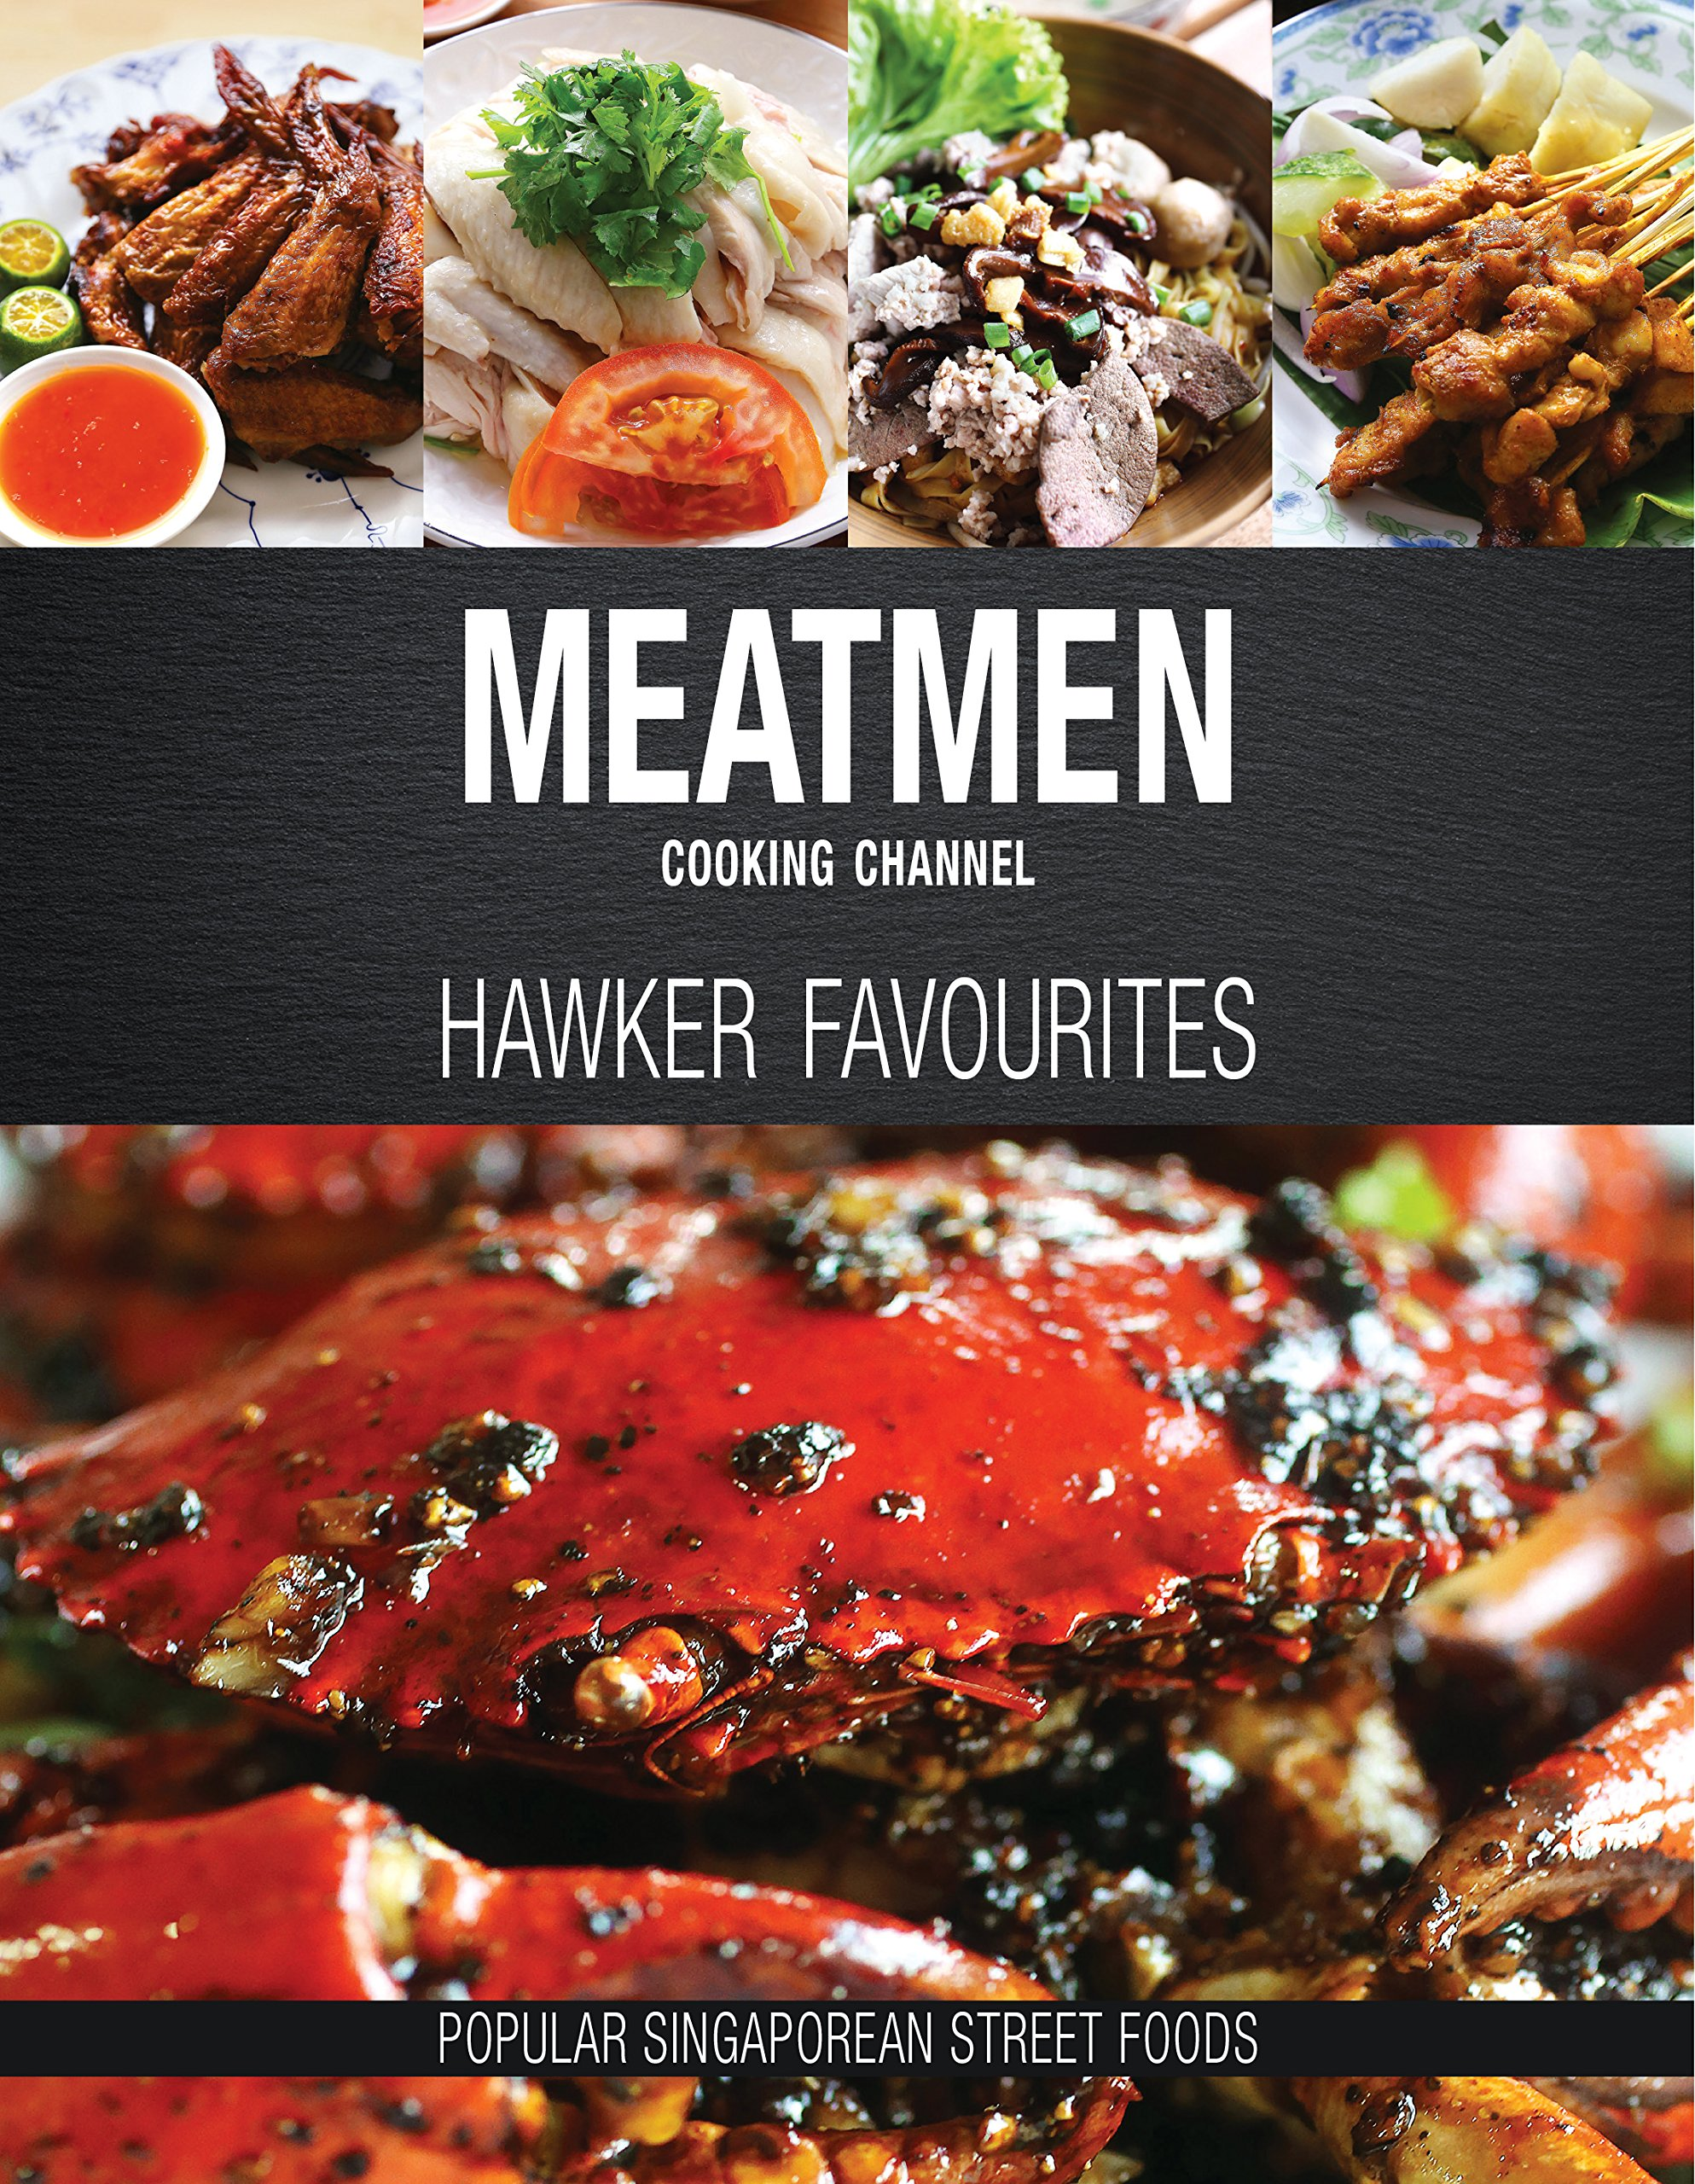 Amazon meatmen cooking channel hawker favourites popular amazon meatmen cooking channel hawker favourites popular singaporean street foods the meatmen series 9789814751636 the meatmen books forumfinder Gallery